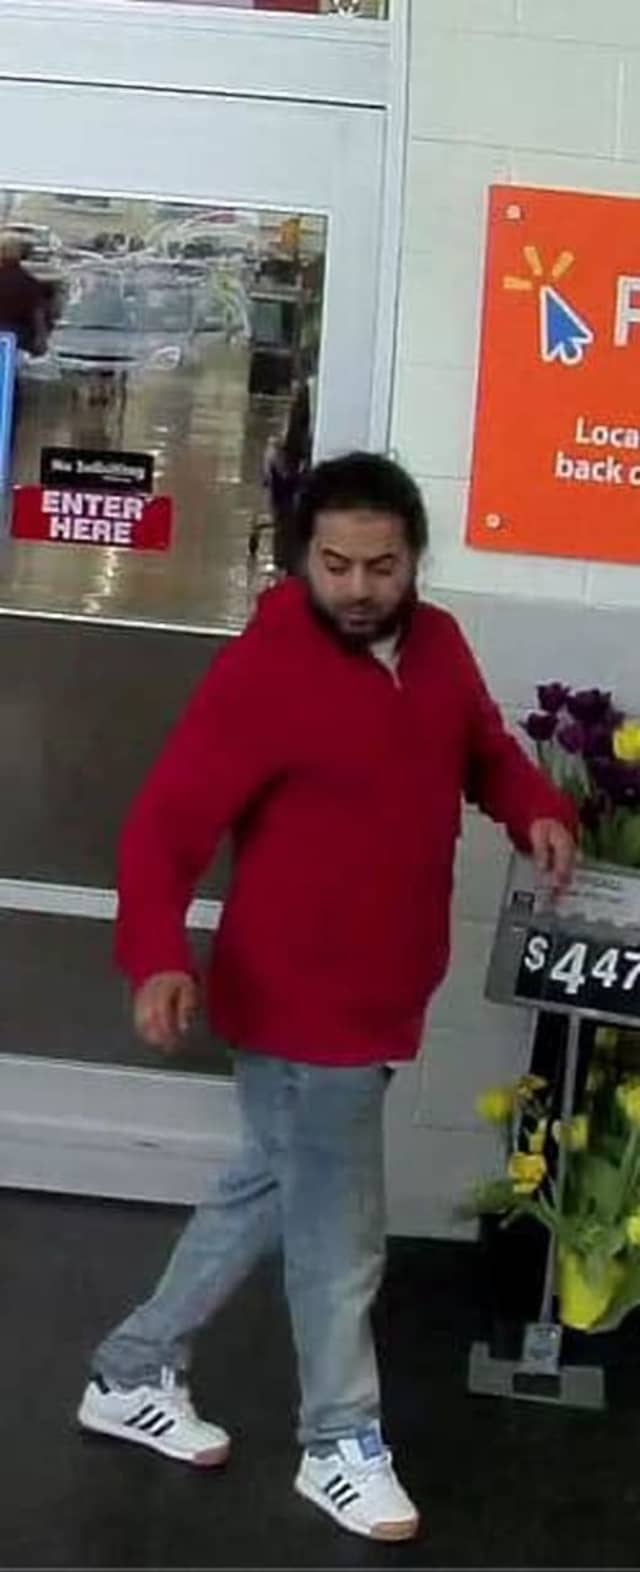 Authorities asked that anyone who sees or knows where to find Carlos Paguada not approach him but, instead, contact the Boonton Police Department Detective Bureau at 973-402-9371 x613 (Detective Chris Petonak) or x611 (Detective Brian Walinski).